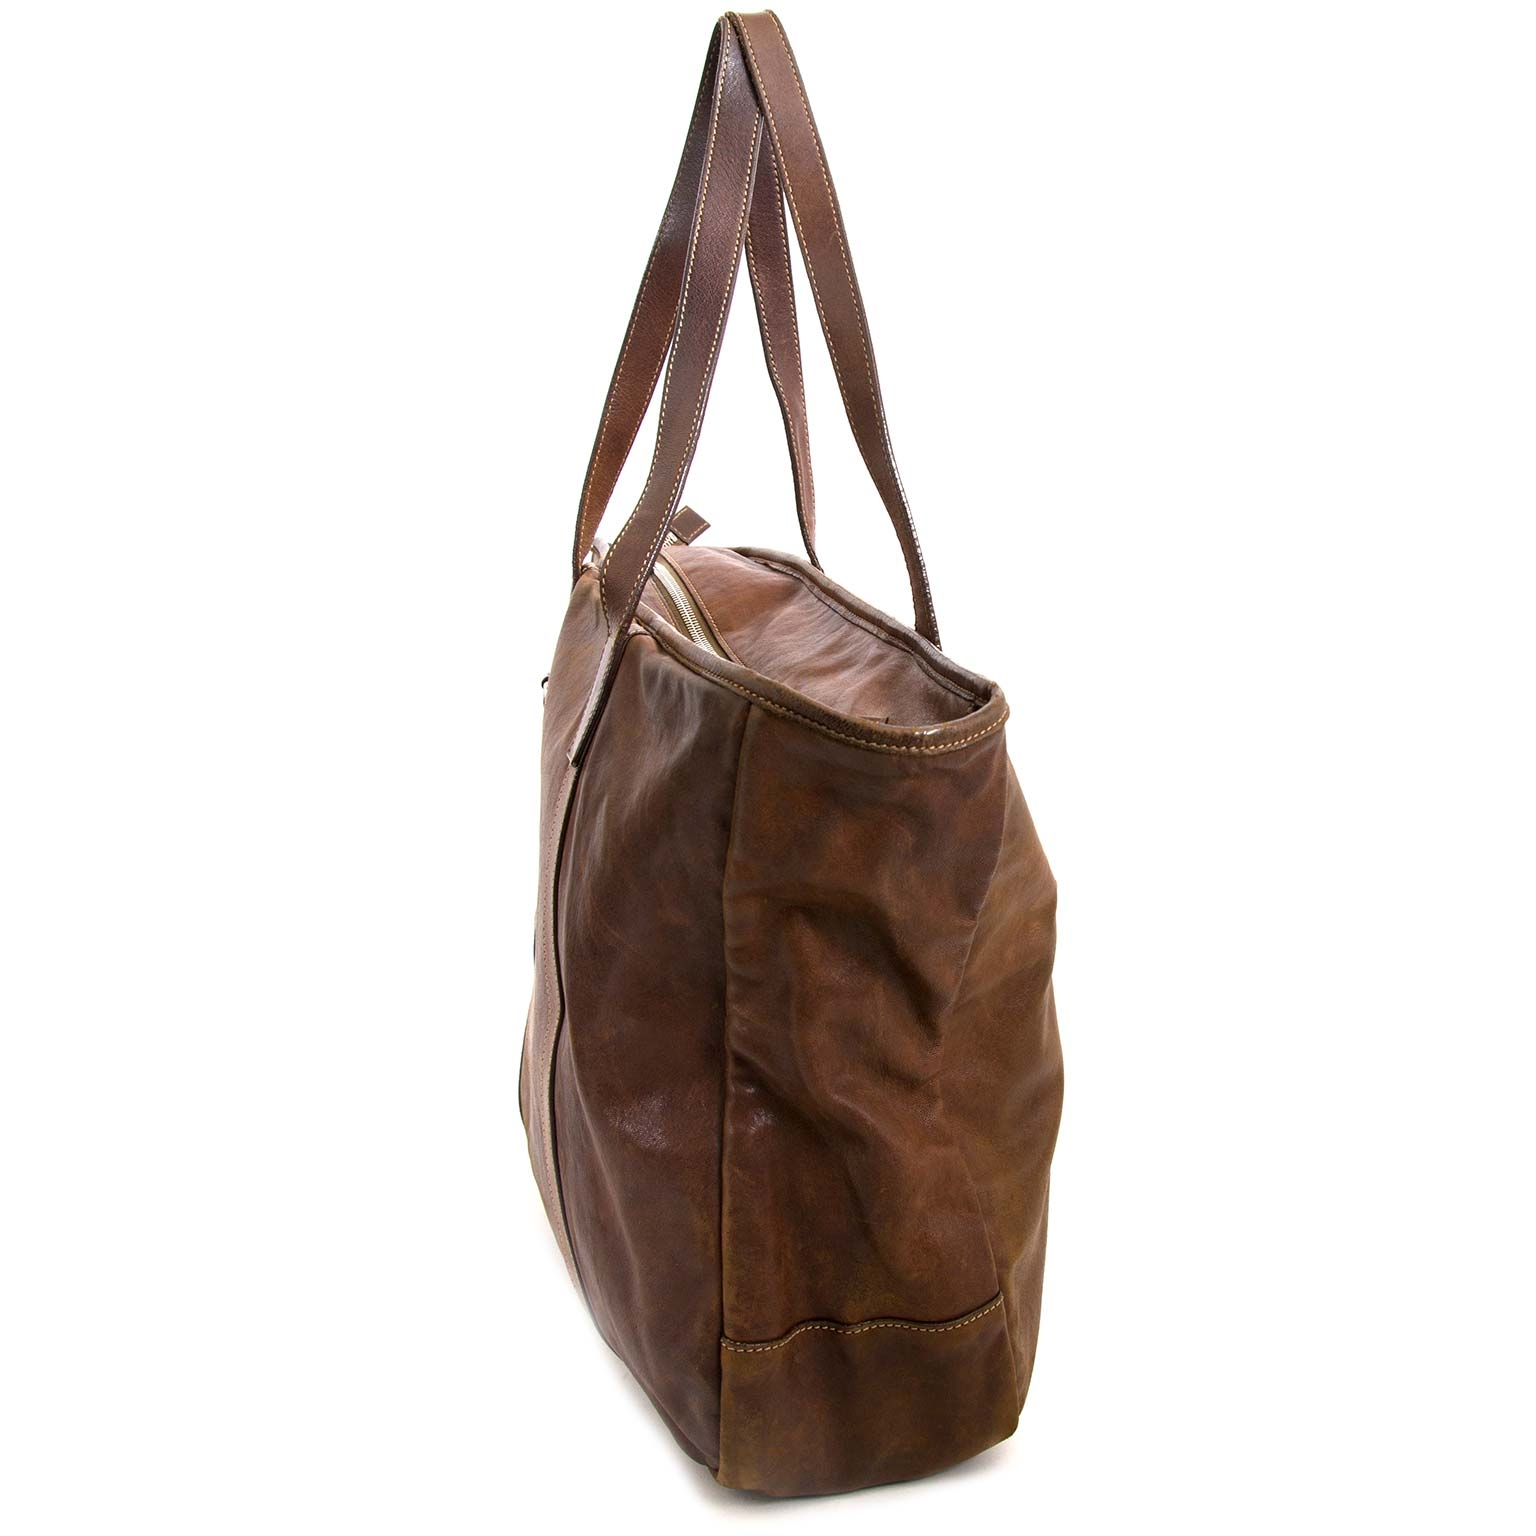 Achetez et vendez authentique Prada Brown Leather Shopper chez labellov anvers